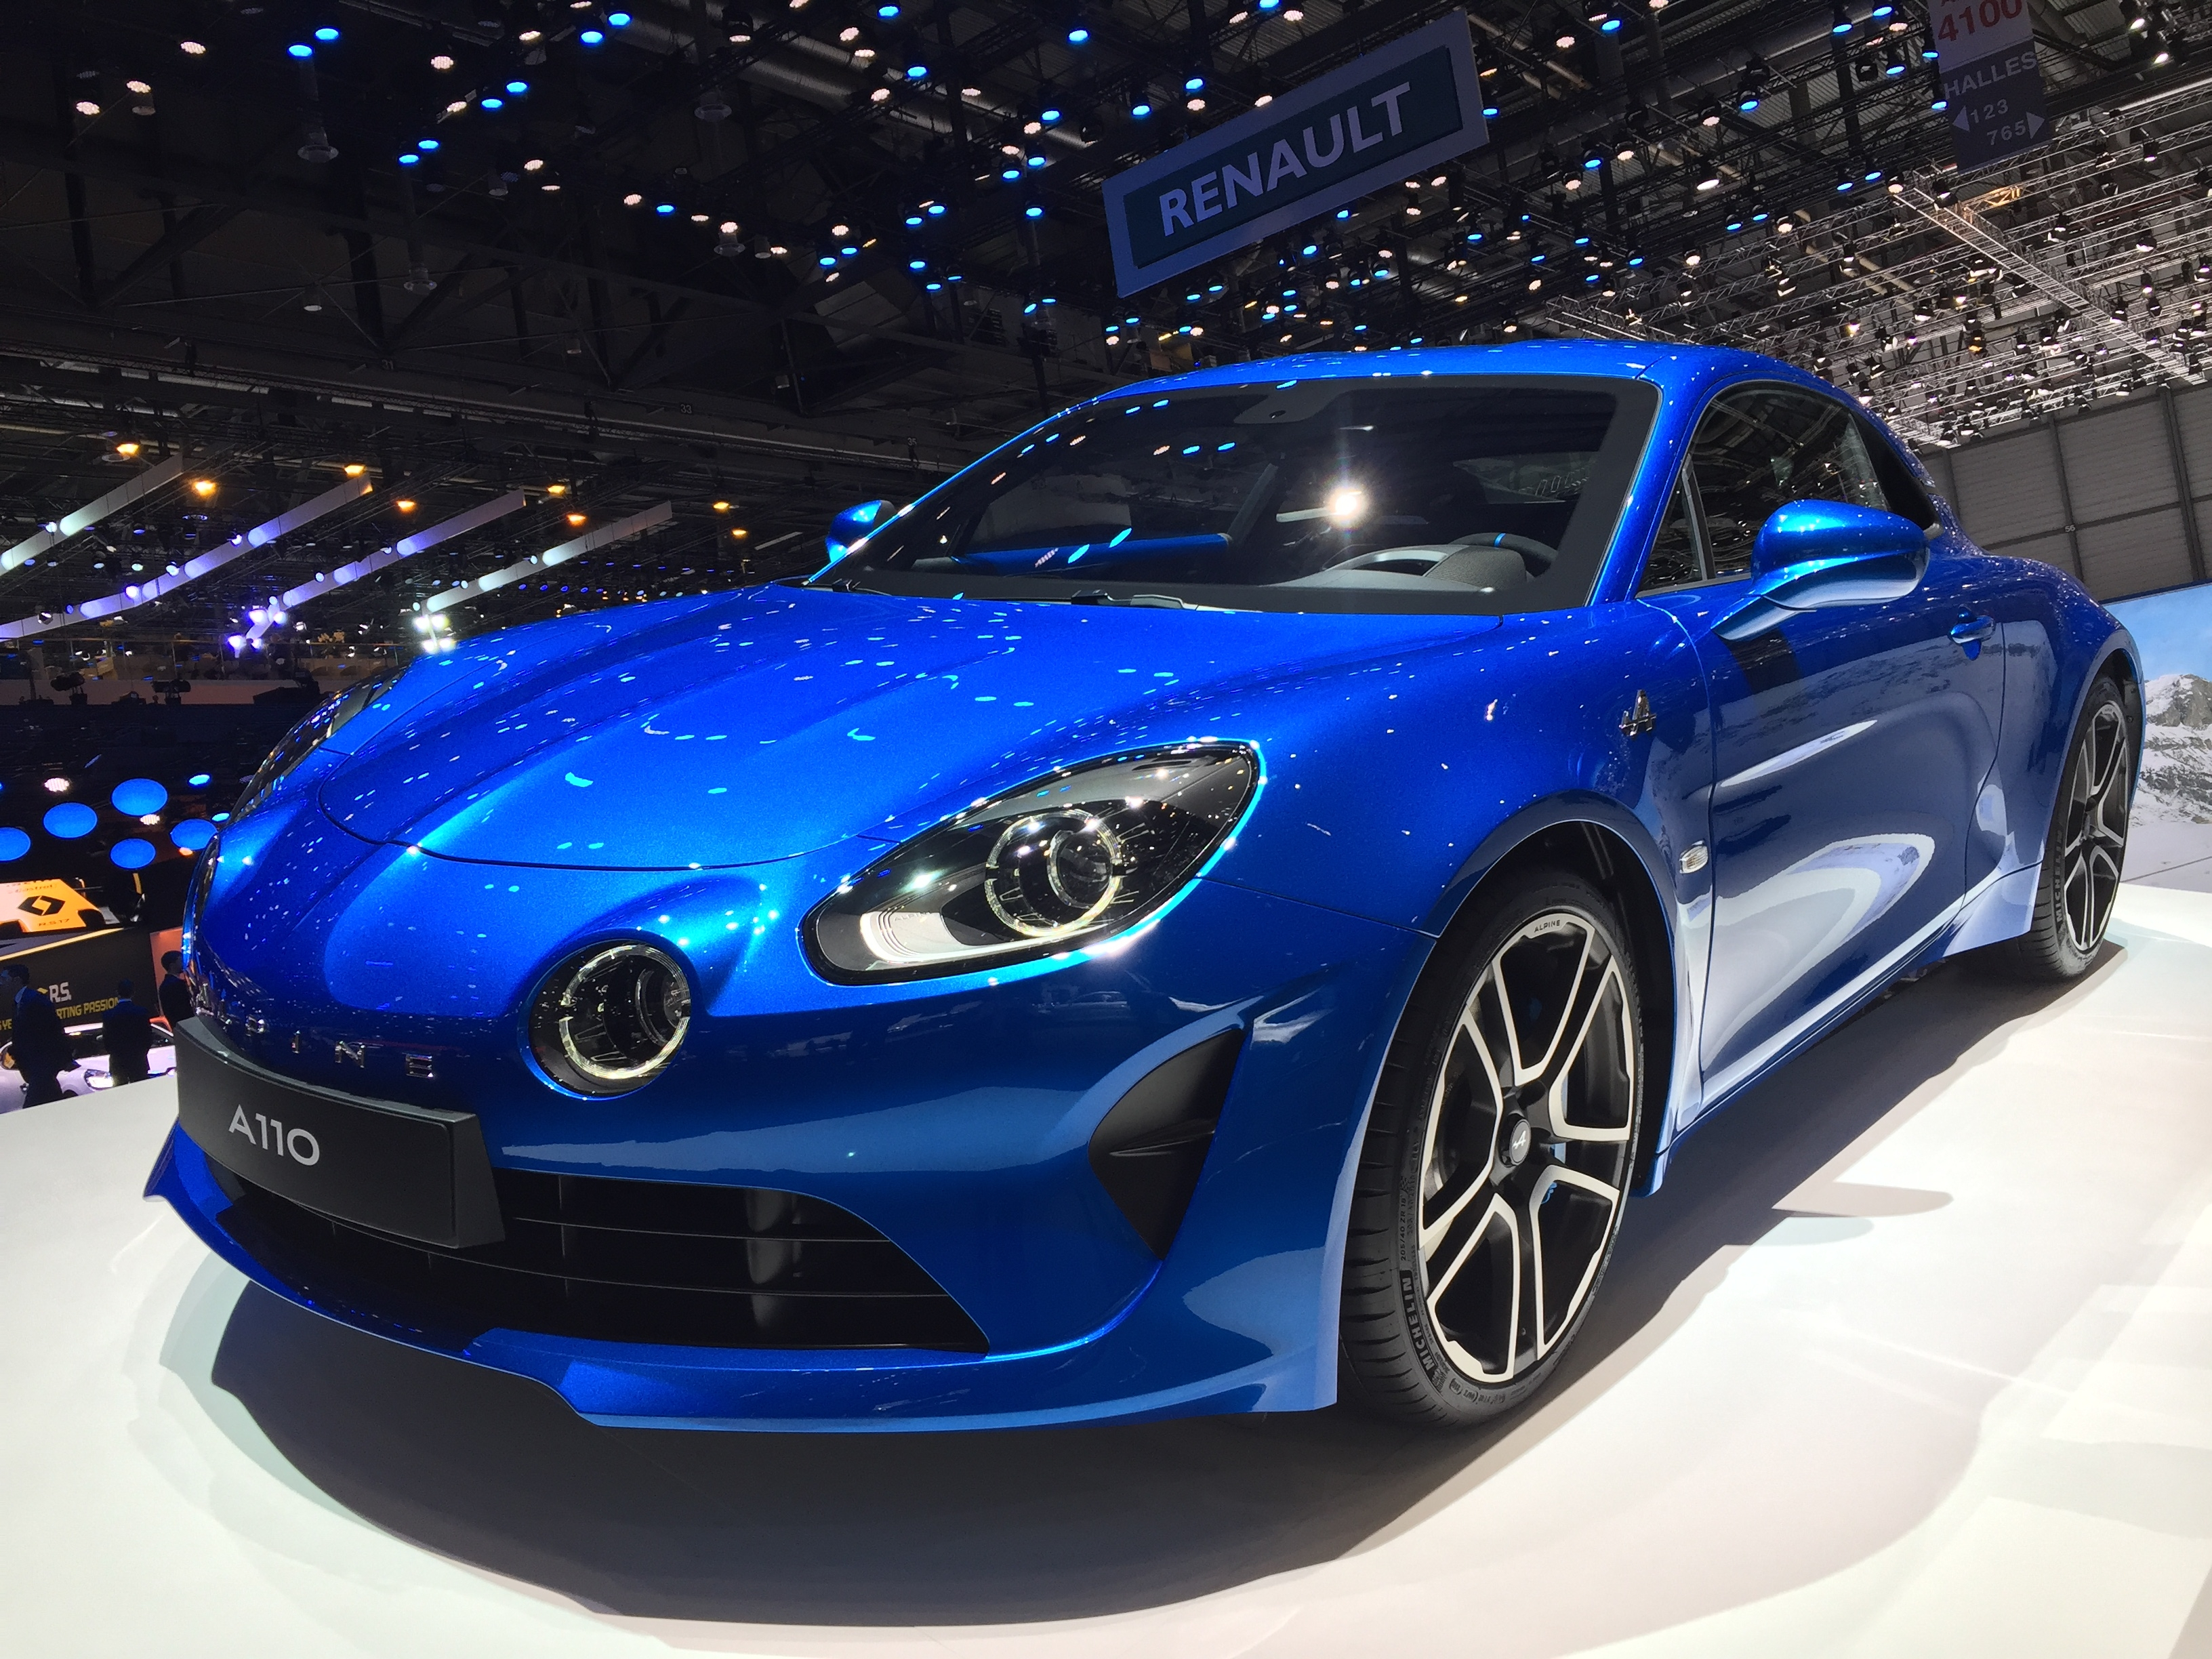 alpine a110 nouvelle star vid o en direct du salon de. Black Bedroom Furniture Sets. Home Design Ideas